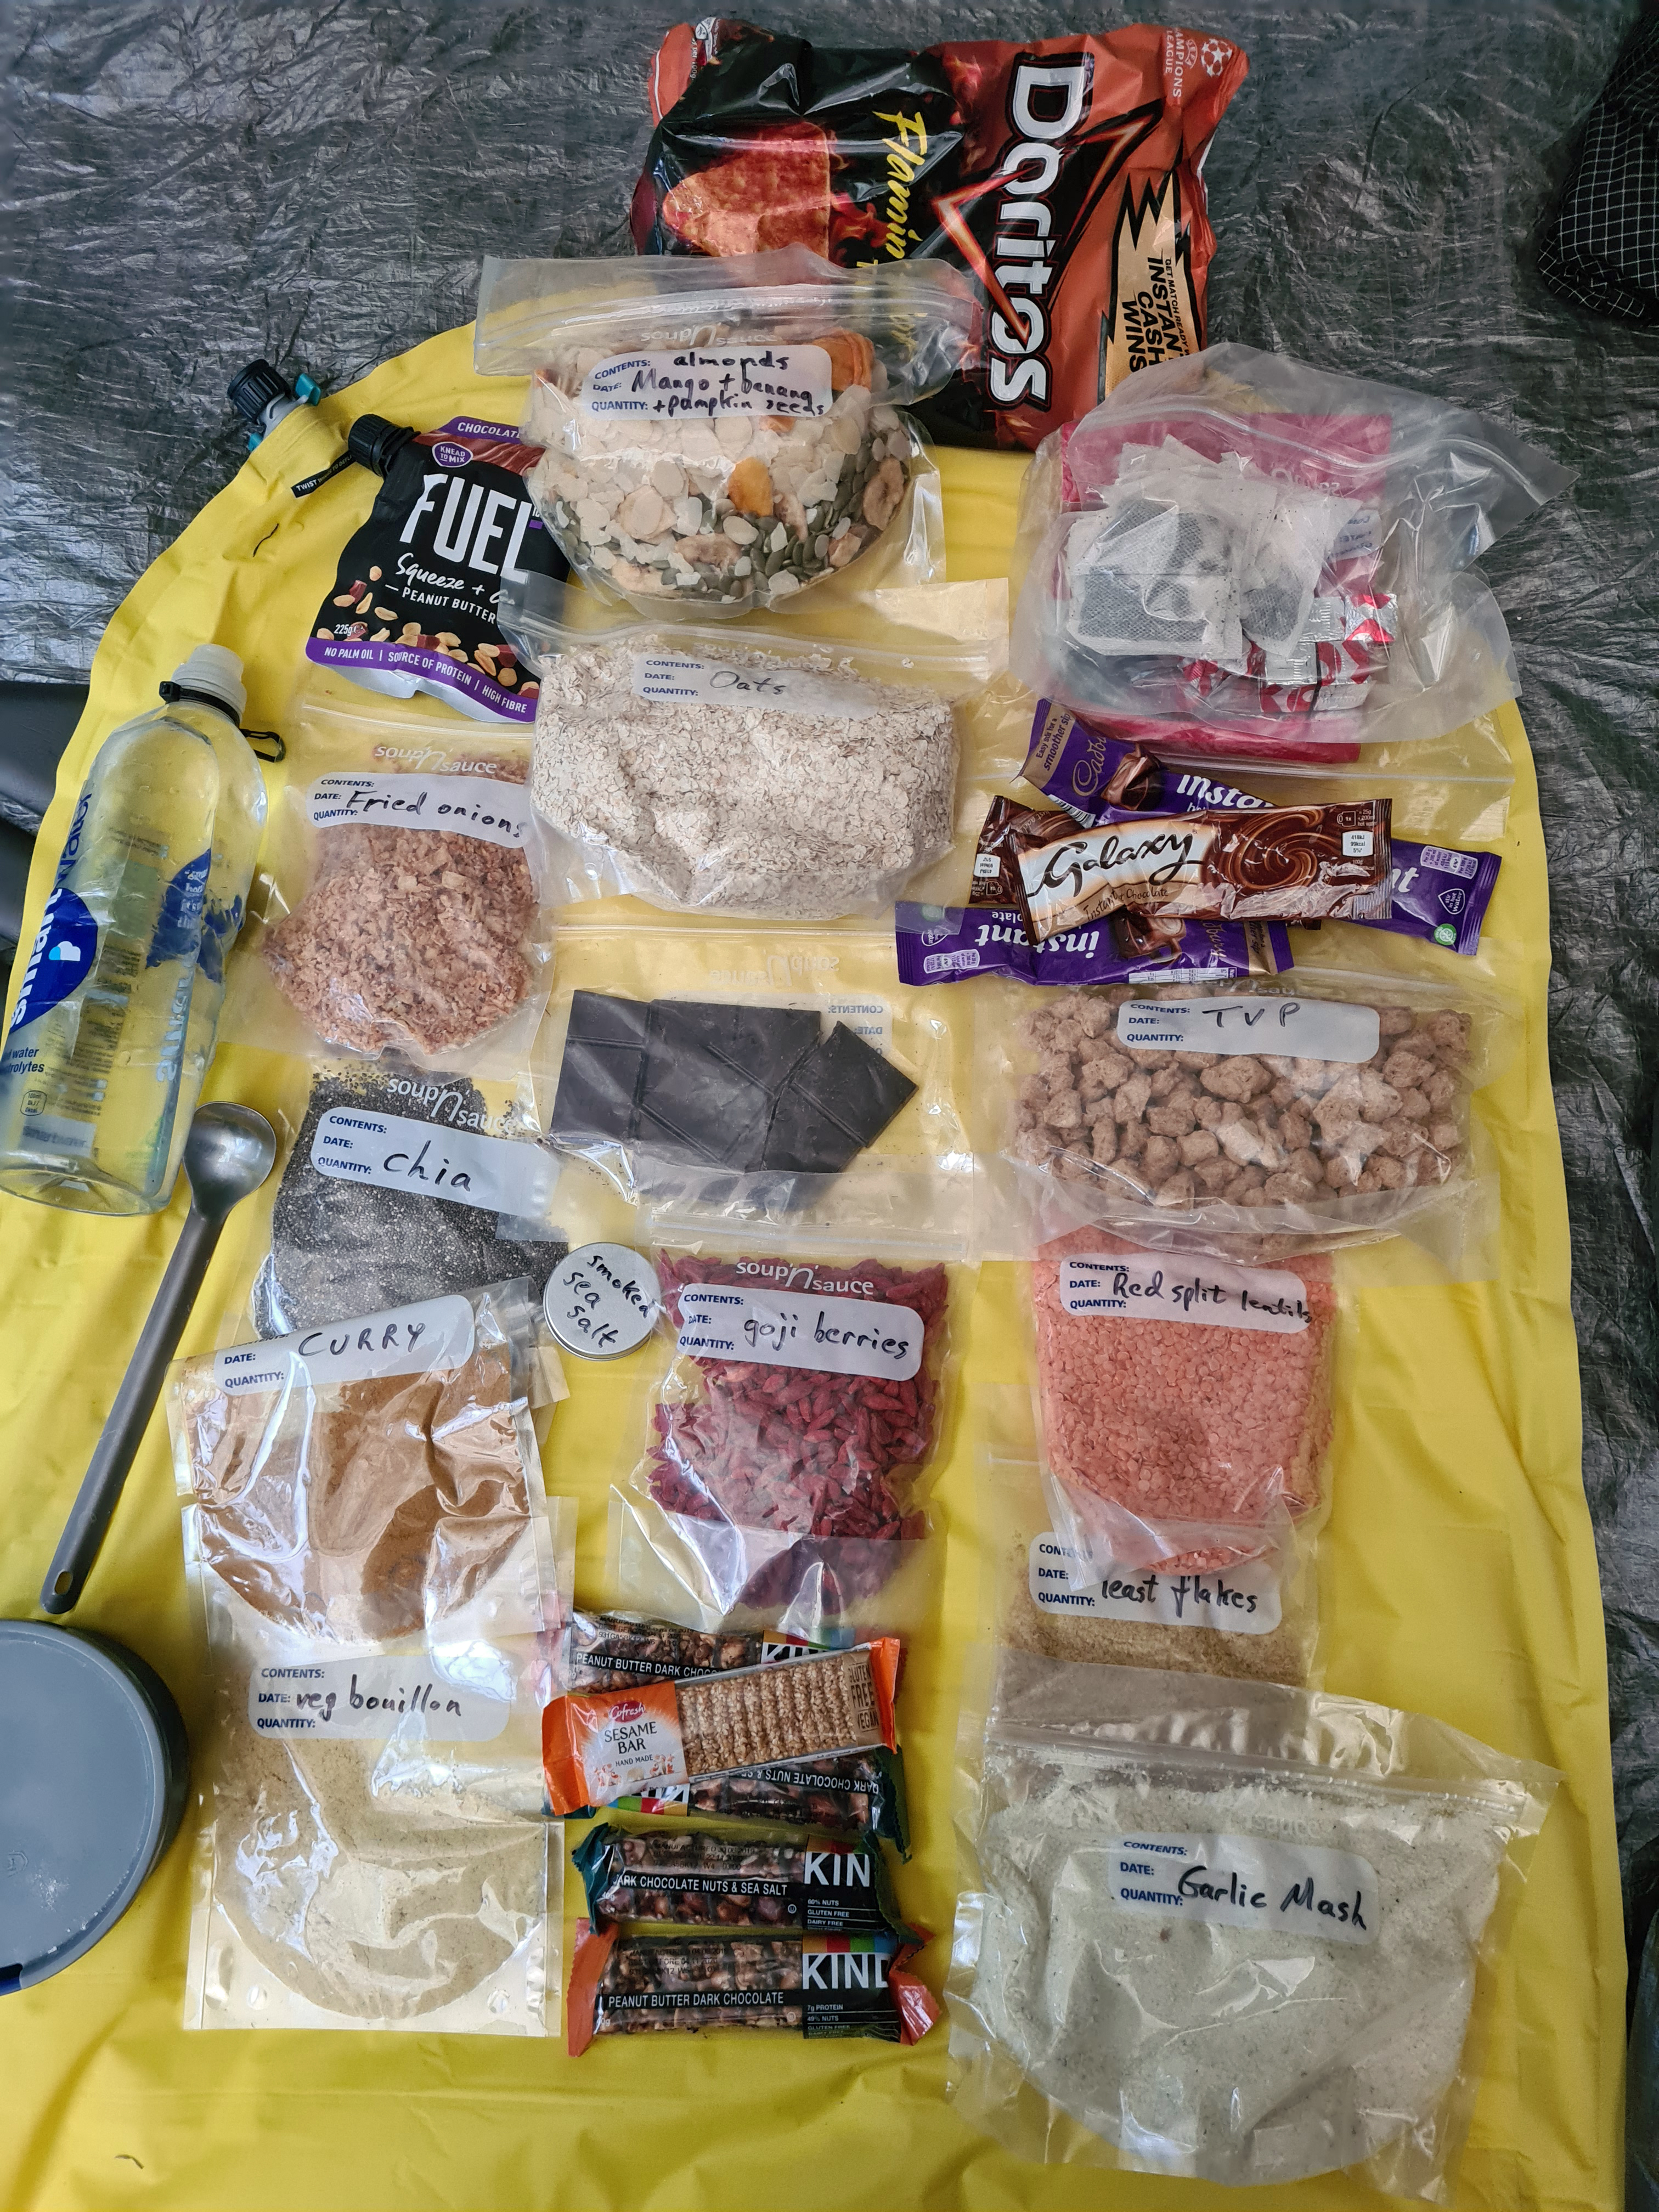 Food carried on the Speyside Way. Oxo cubes are tucked away with tea bags and dried milk powder, top right